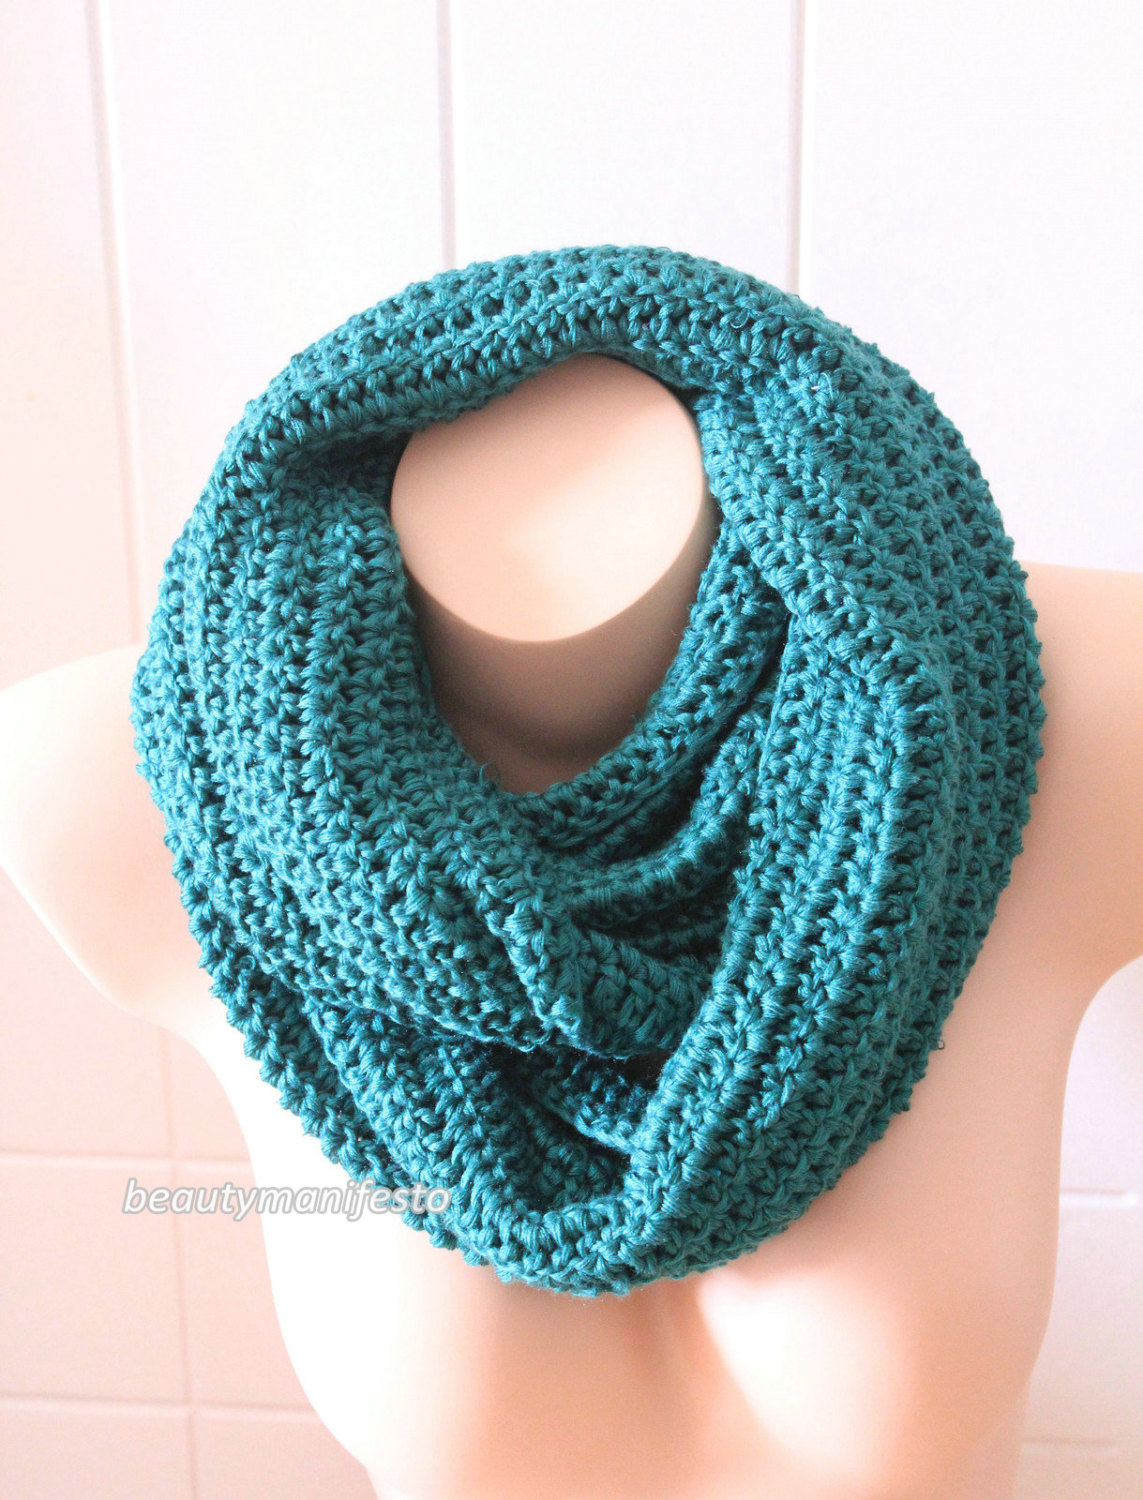 Oversized knit scarf,oversized chunky infinity scarf in emerald green color,crochet infinity scarves,custom orders welcome